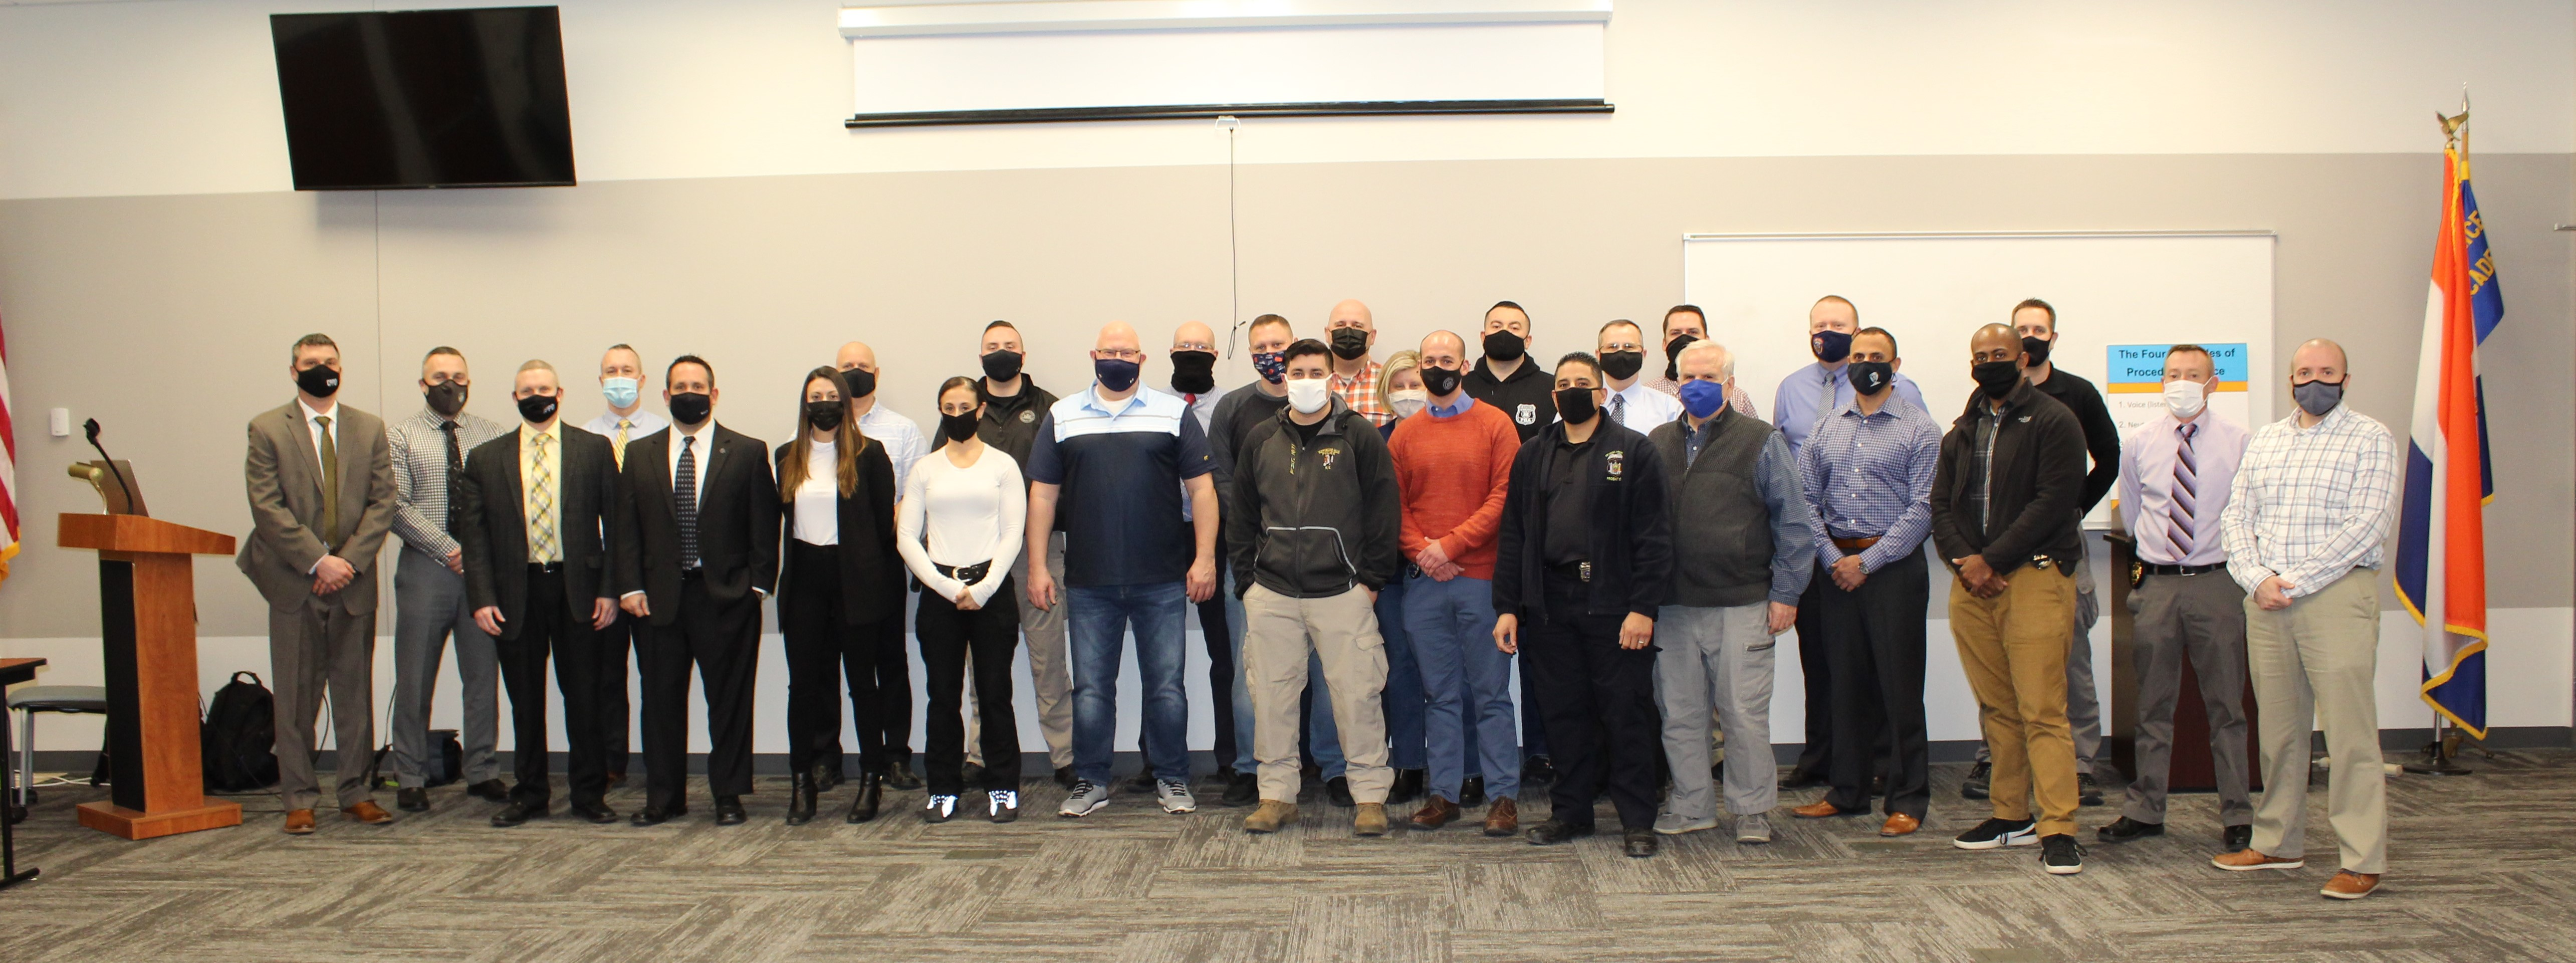 Law enforcement officers who completed the Implicit Bias Train-the-Trainer Course at the Dutchess County Sheriff's Office law Enforcement Center.